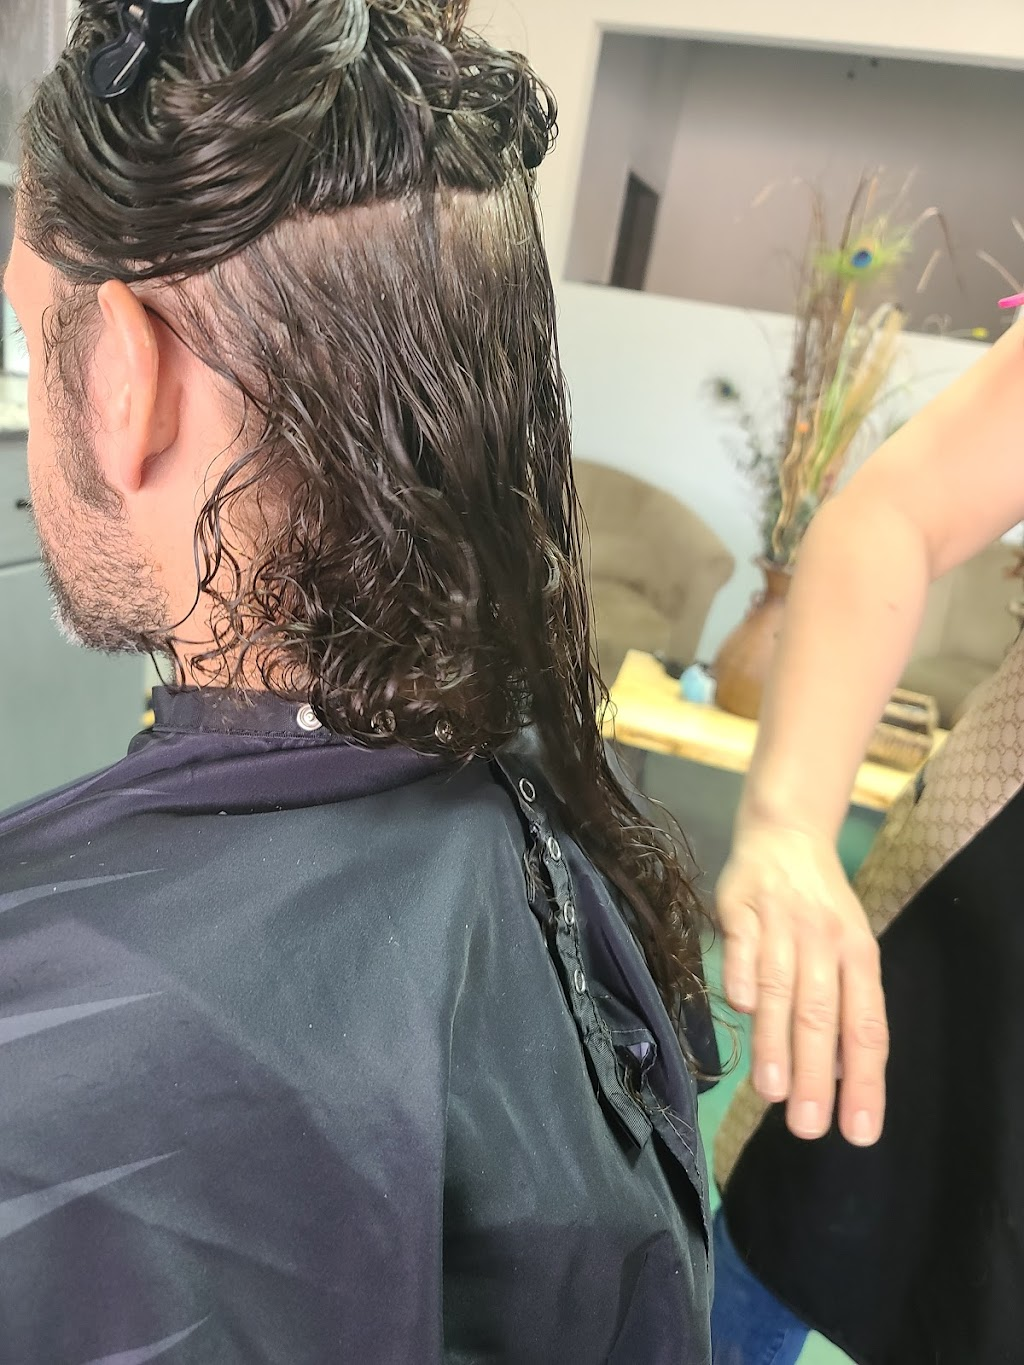 Hair By Billie Jo - hair care  | Photo 1 of 1 | Address: 3923 Corrales Rd suite d, Corrales, NM 87048, USA | Phone: (505) 417-0849